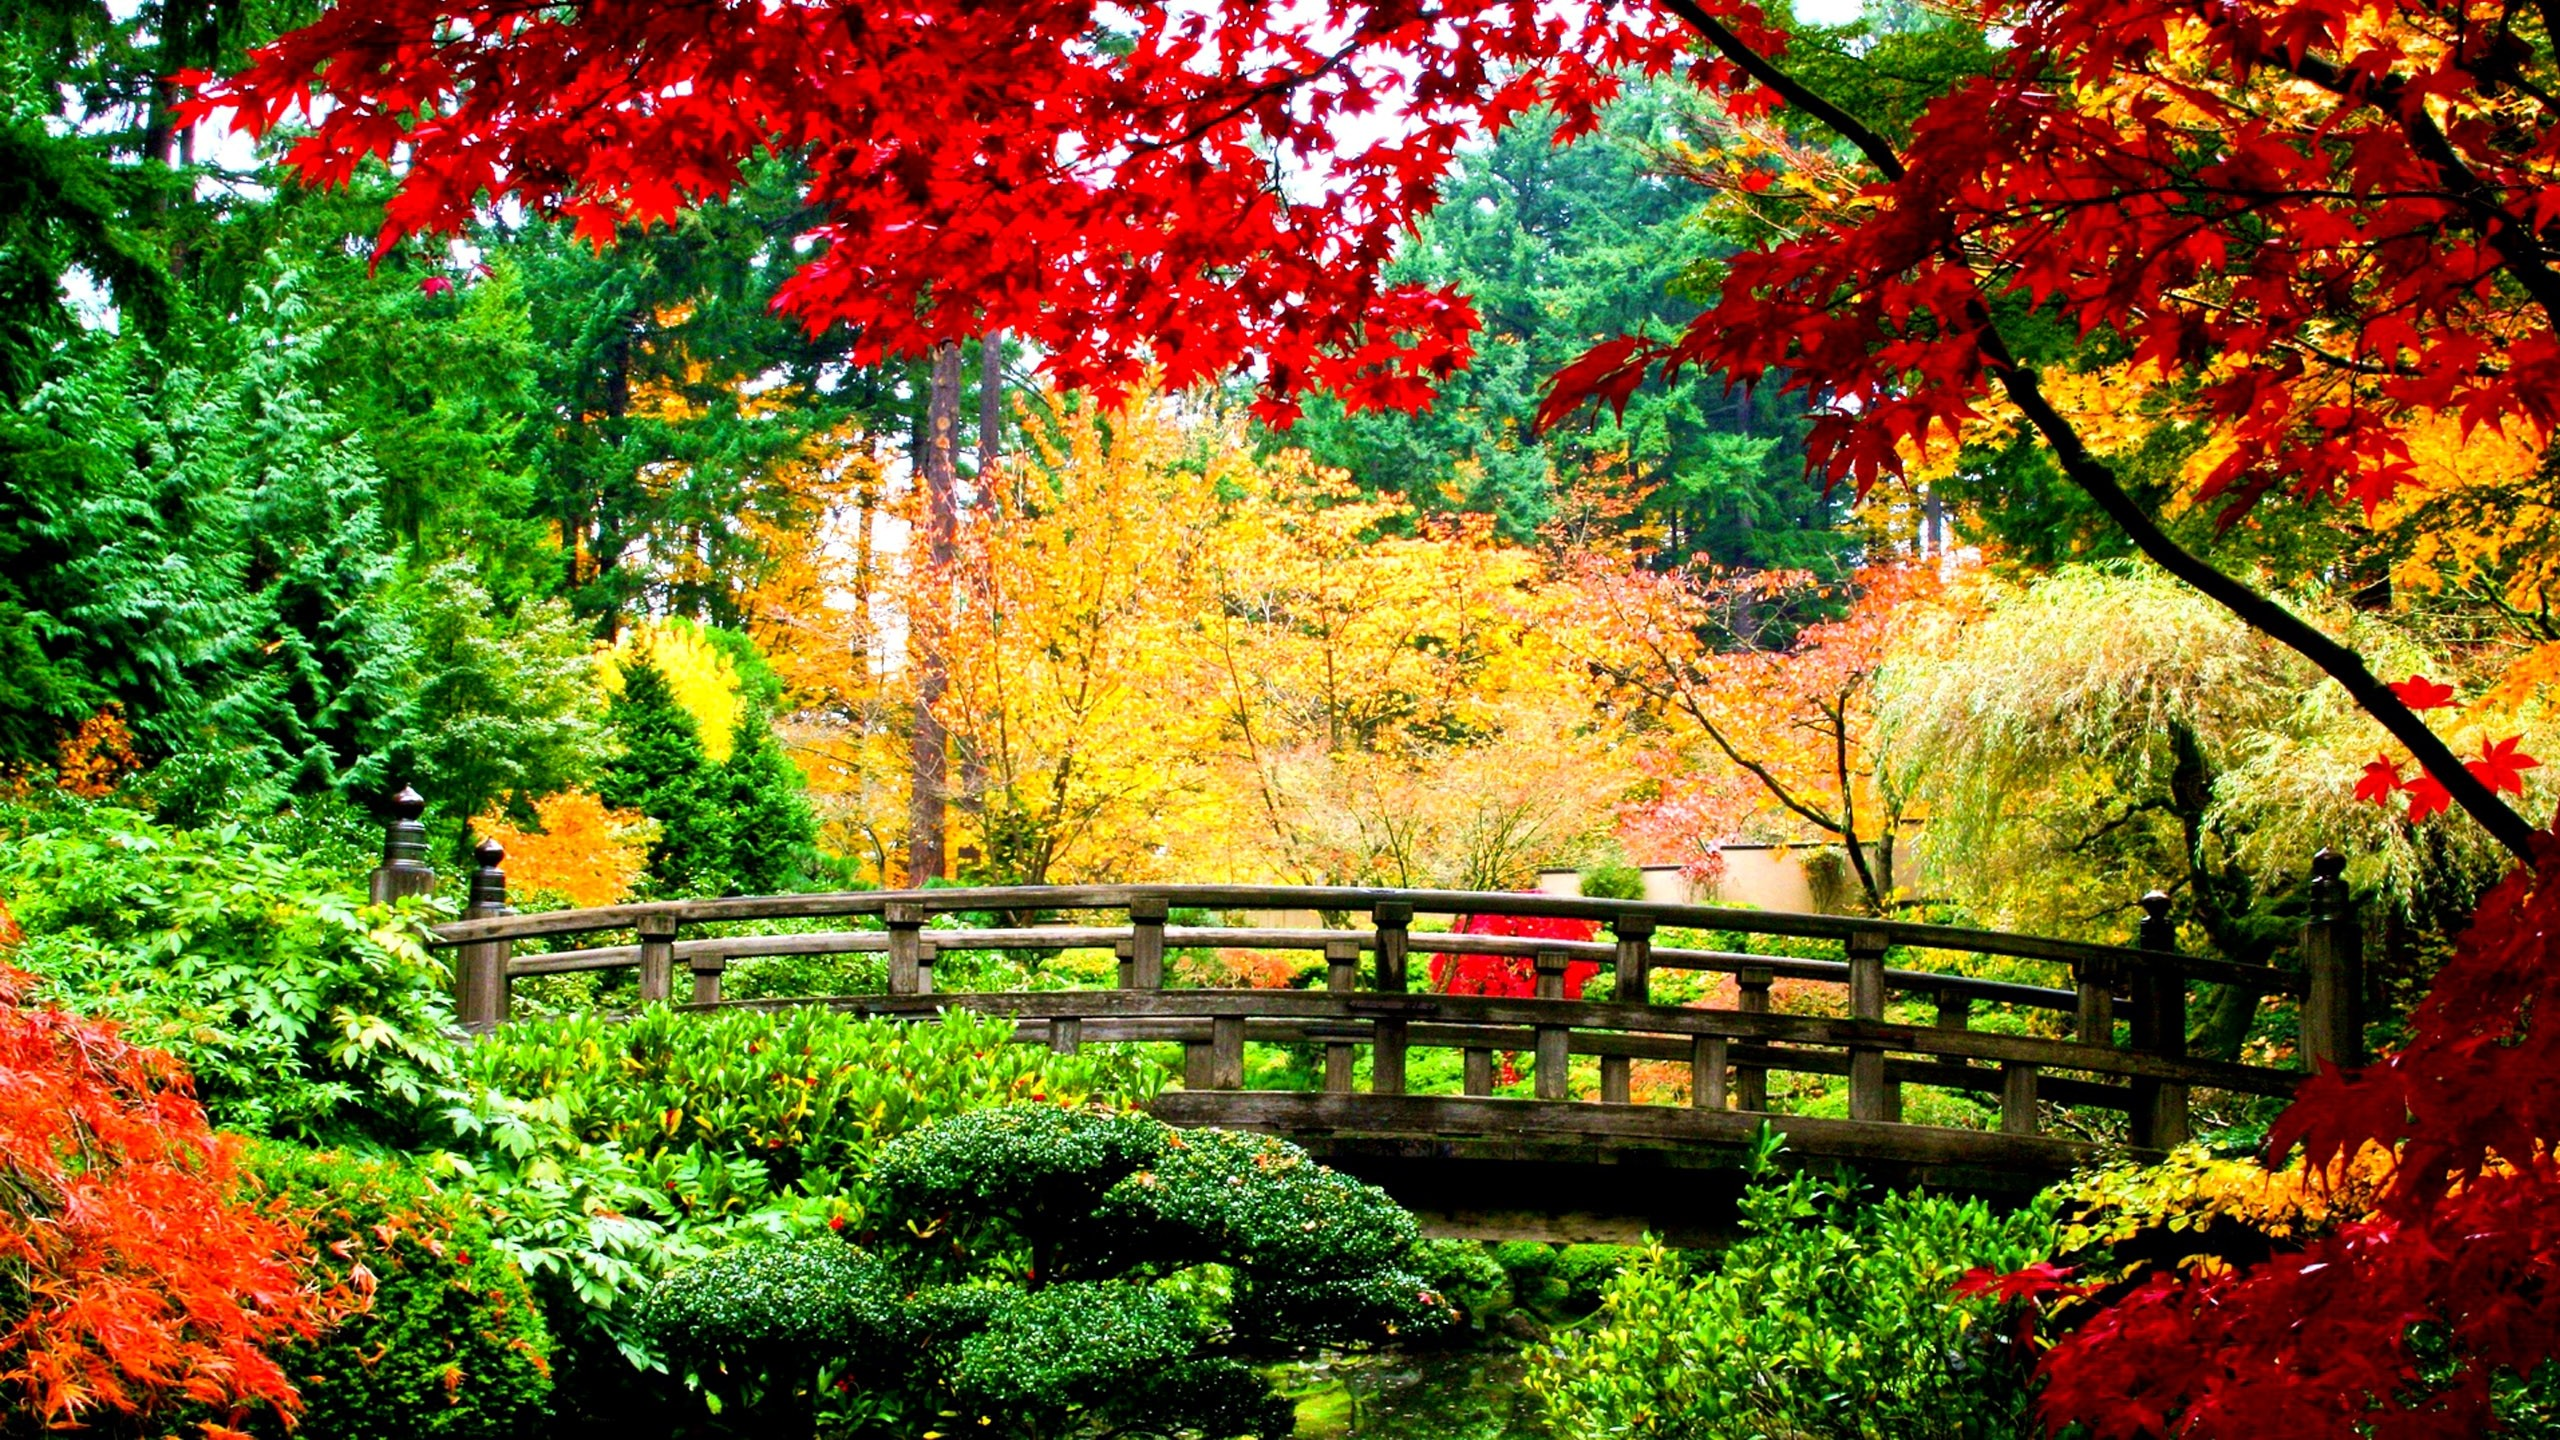 Usa garden autumn portland japanese shrubs trees nature wallpaper – Find  This Pin And More On